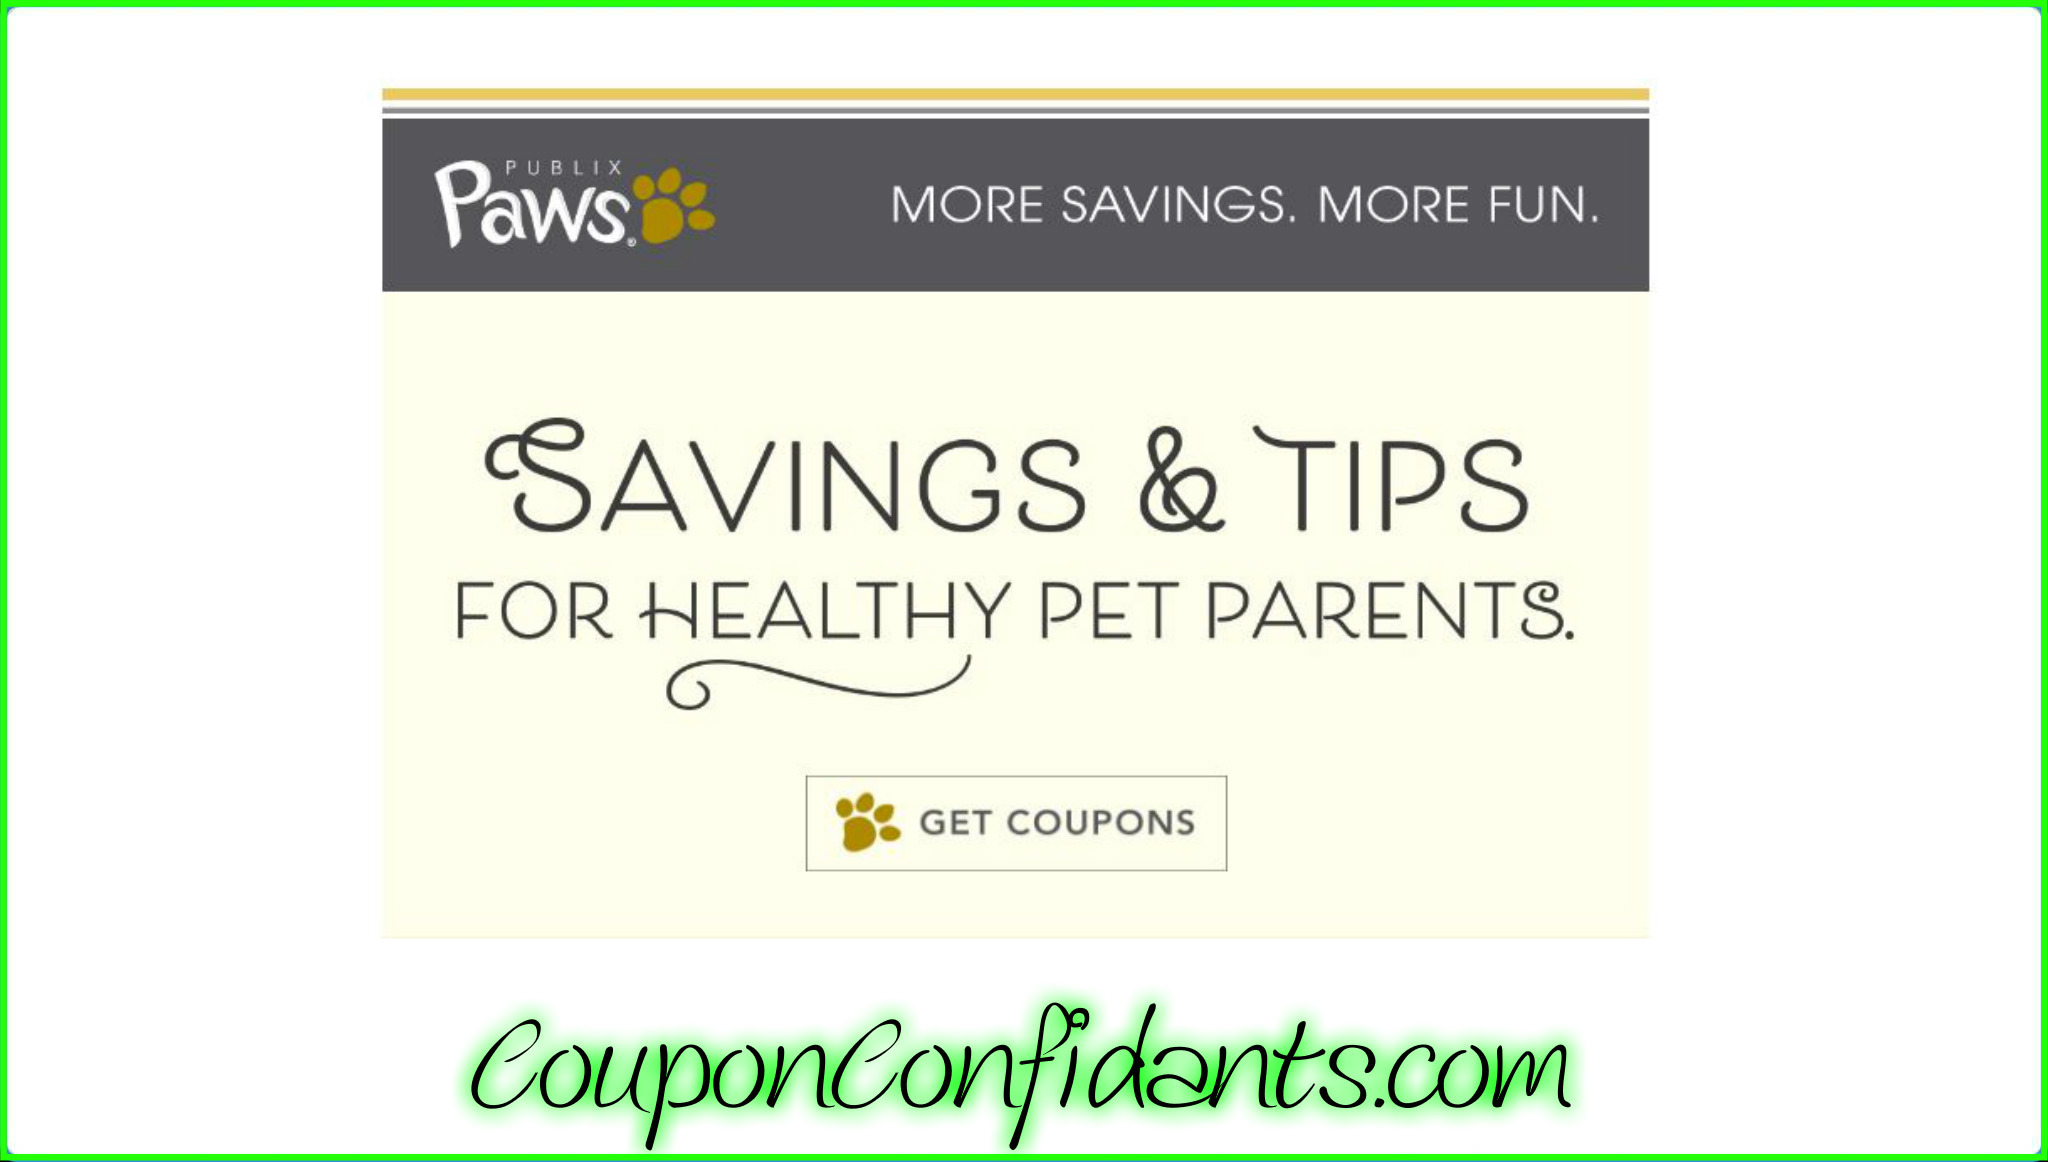 NEW Publix Pet Paws Coupons are here! Check those emails!